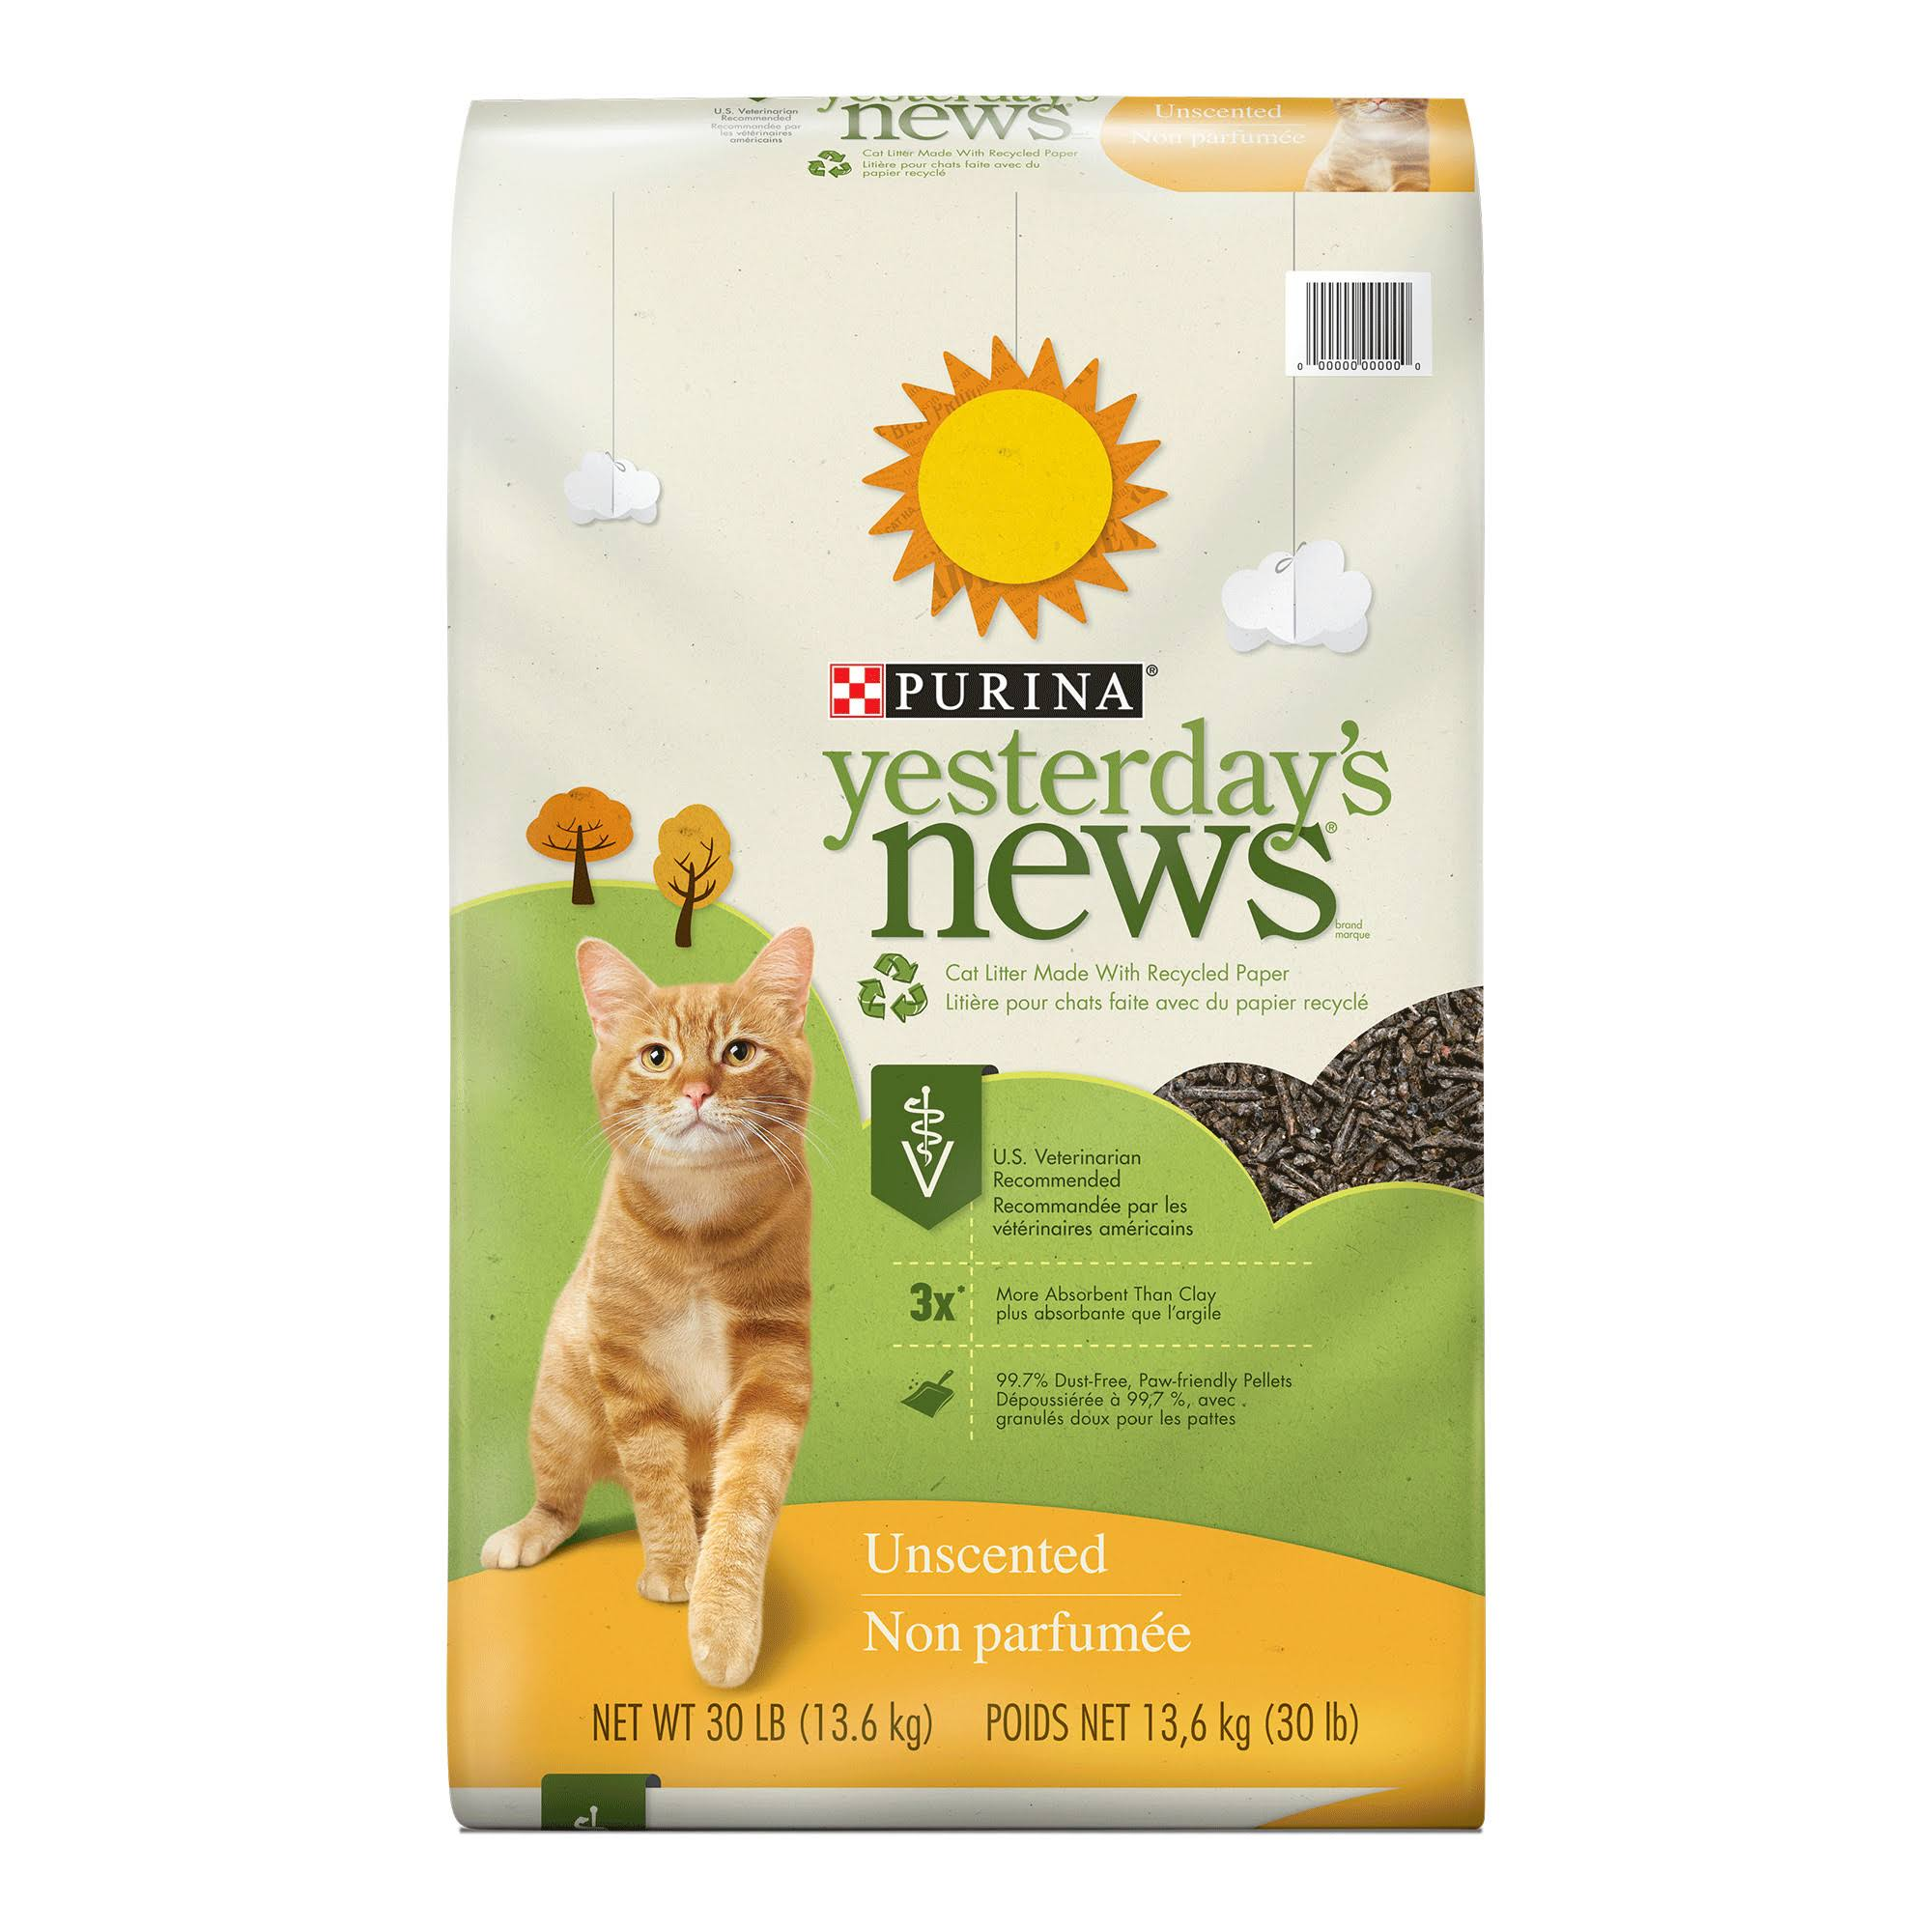 Purina Yesterday's News Cat Litter - Unscented